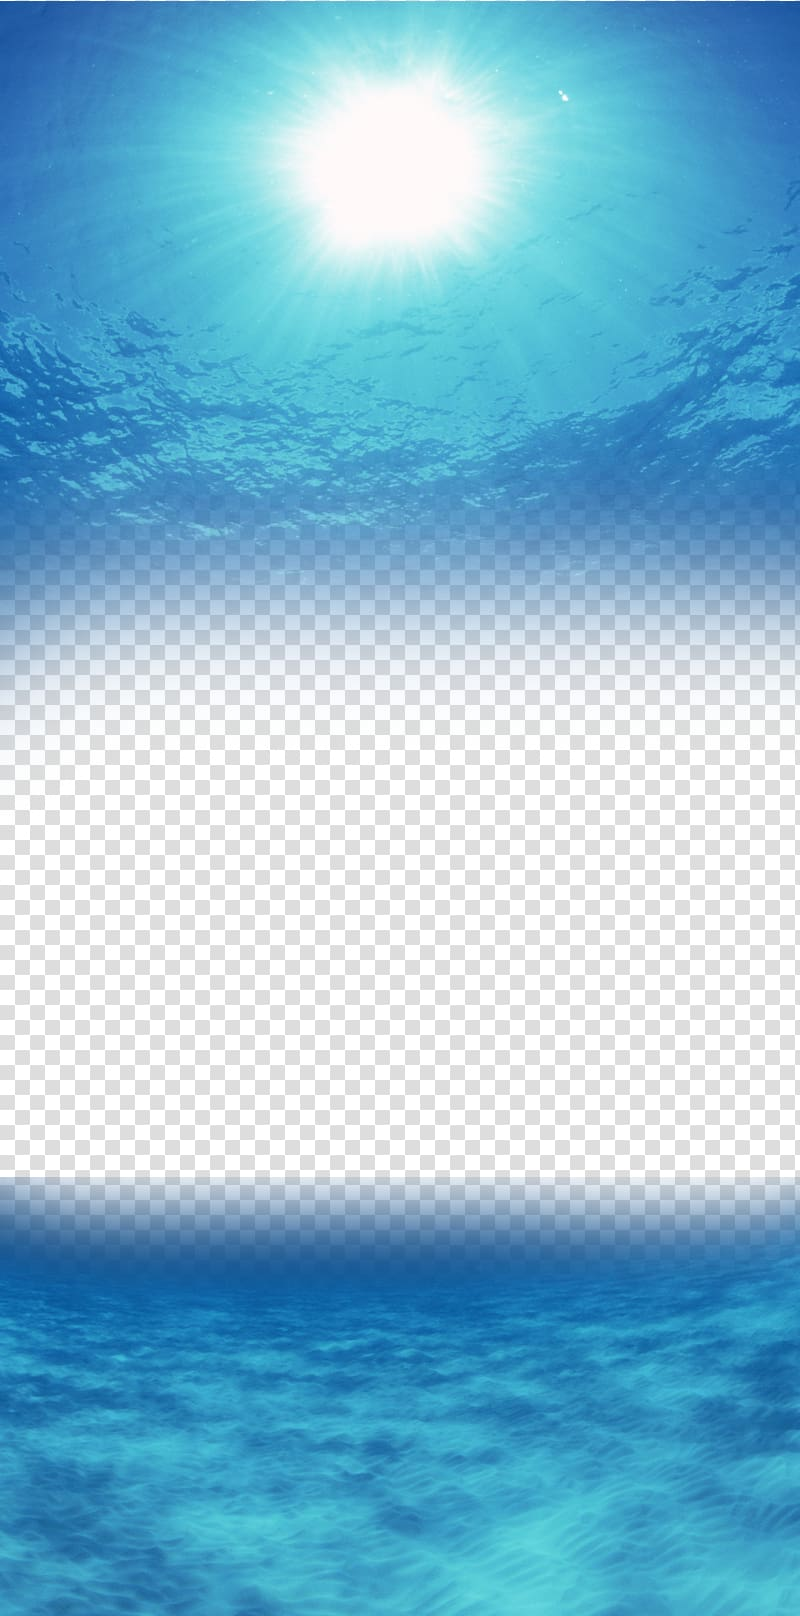 Light Reflection Png - Light Reflection, Halo sea transparent background PNG clipart ...